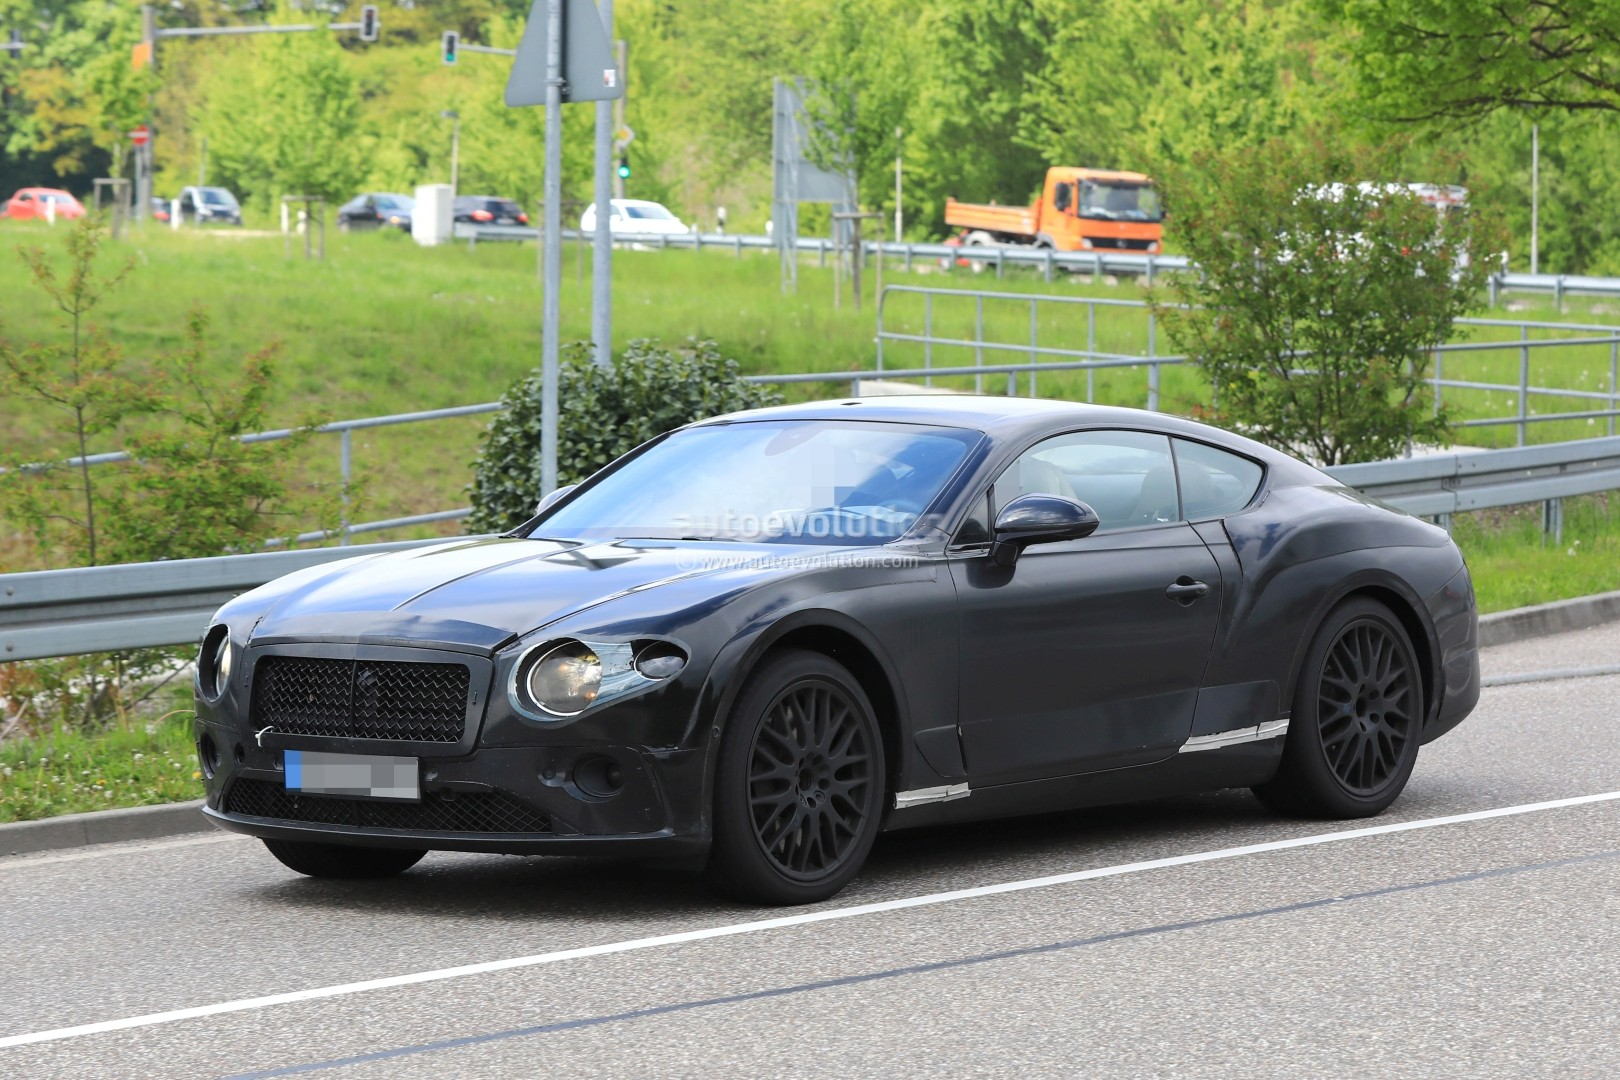 2017 - [Bentley] Continental GT - Page 2 2018-bentley-continental-gt-shows-new-features-in-first-interior-spyshots_5